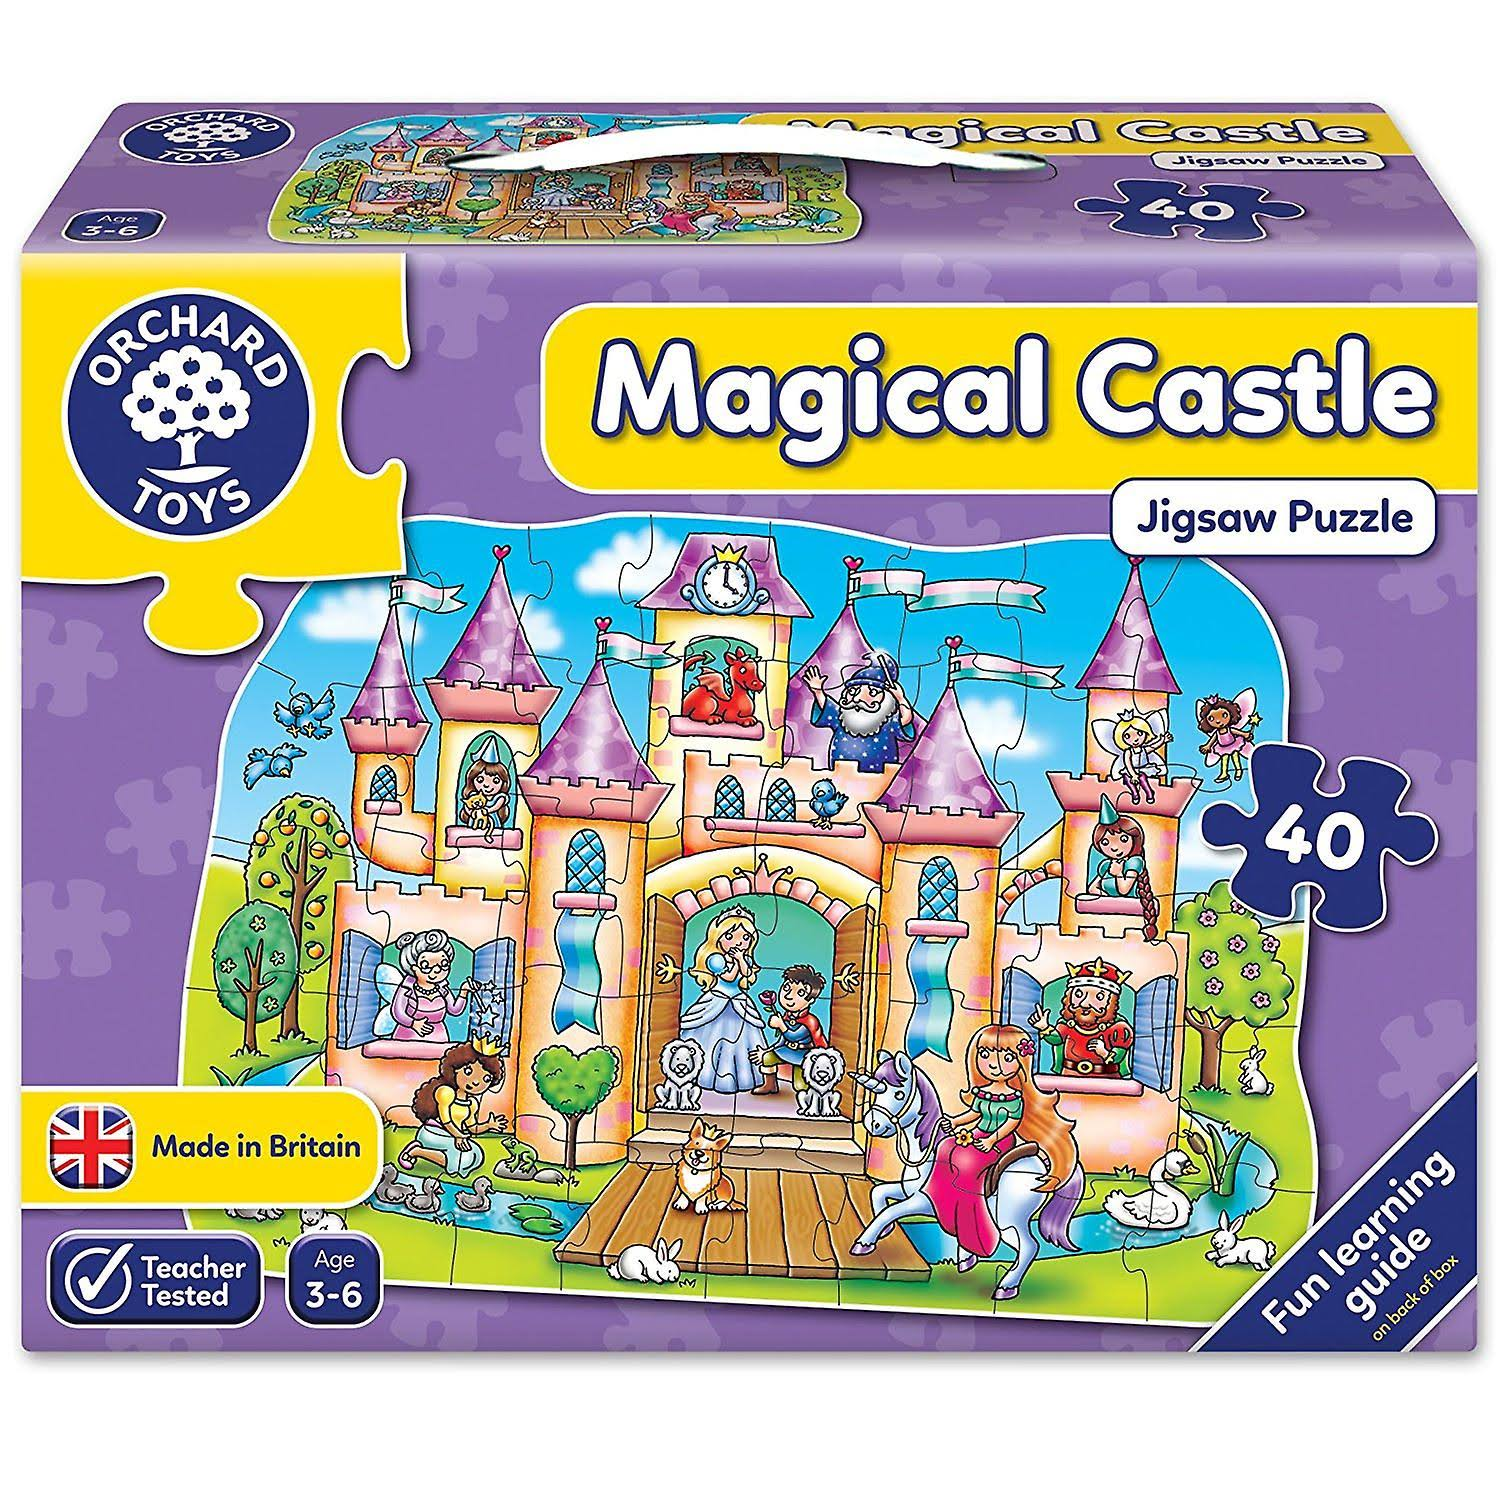 Orchard Toys Magical Castle Shaped Floor Puzzle